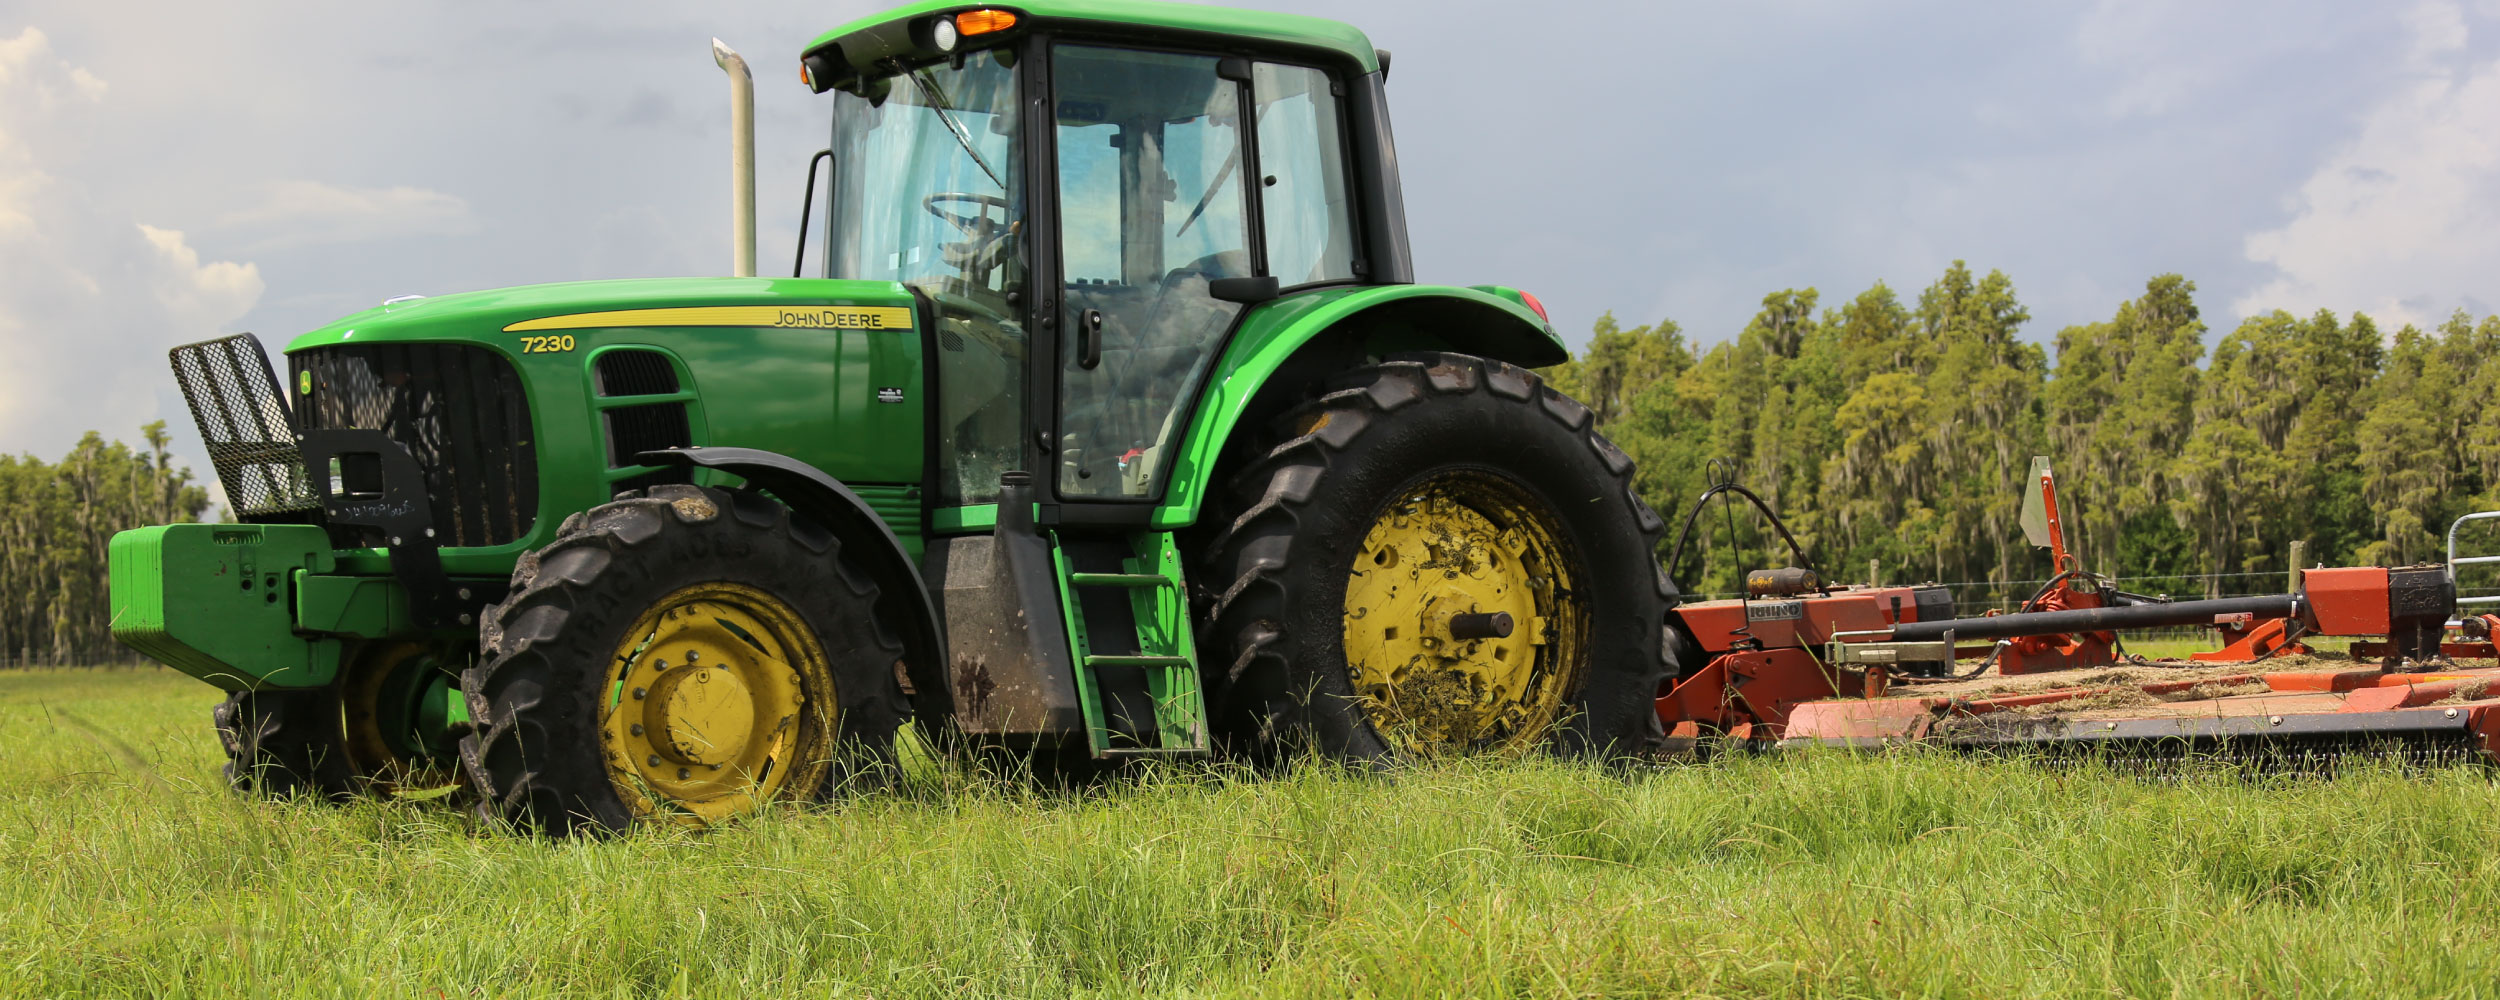 Photo of Tractor on Florida farm